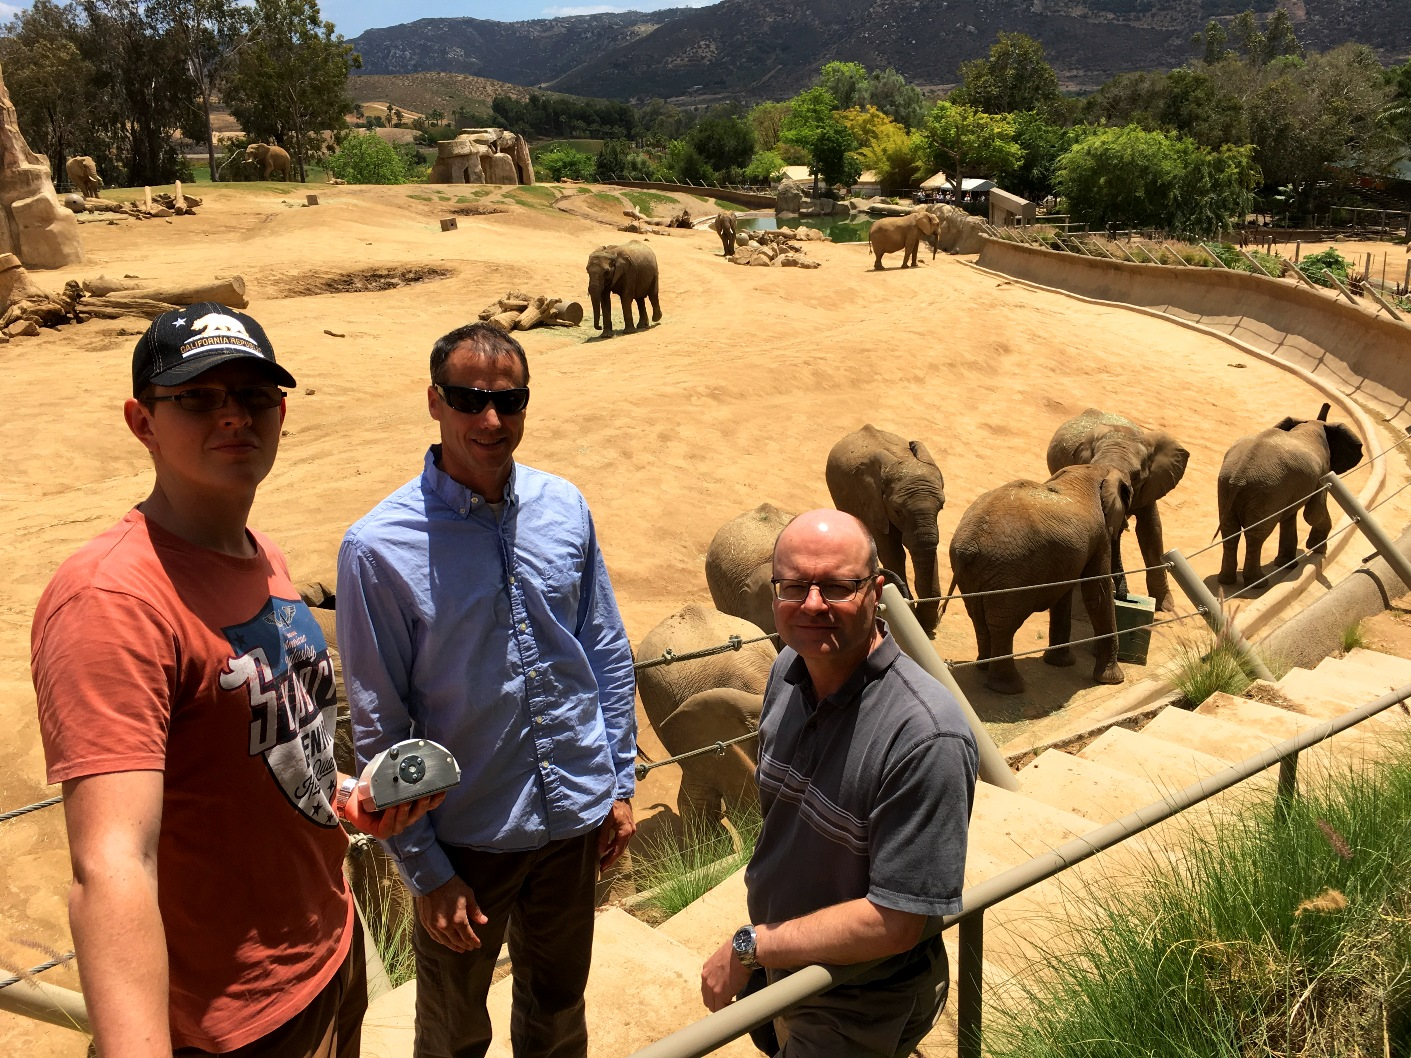 The WIPER team in at the San Diego Zoo: (L-R) Gyorgy Kalmar, George Wittemyer, Ákos Lédeczi, with test subjects behind them.